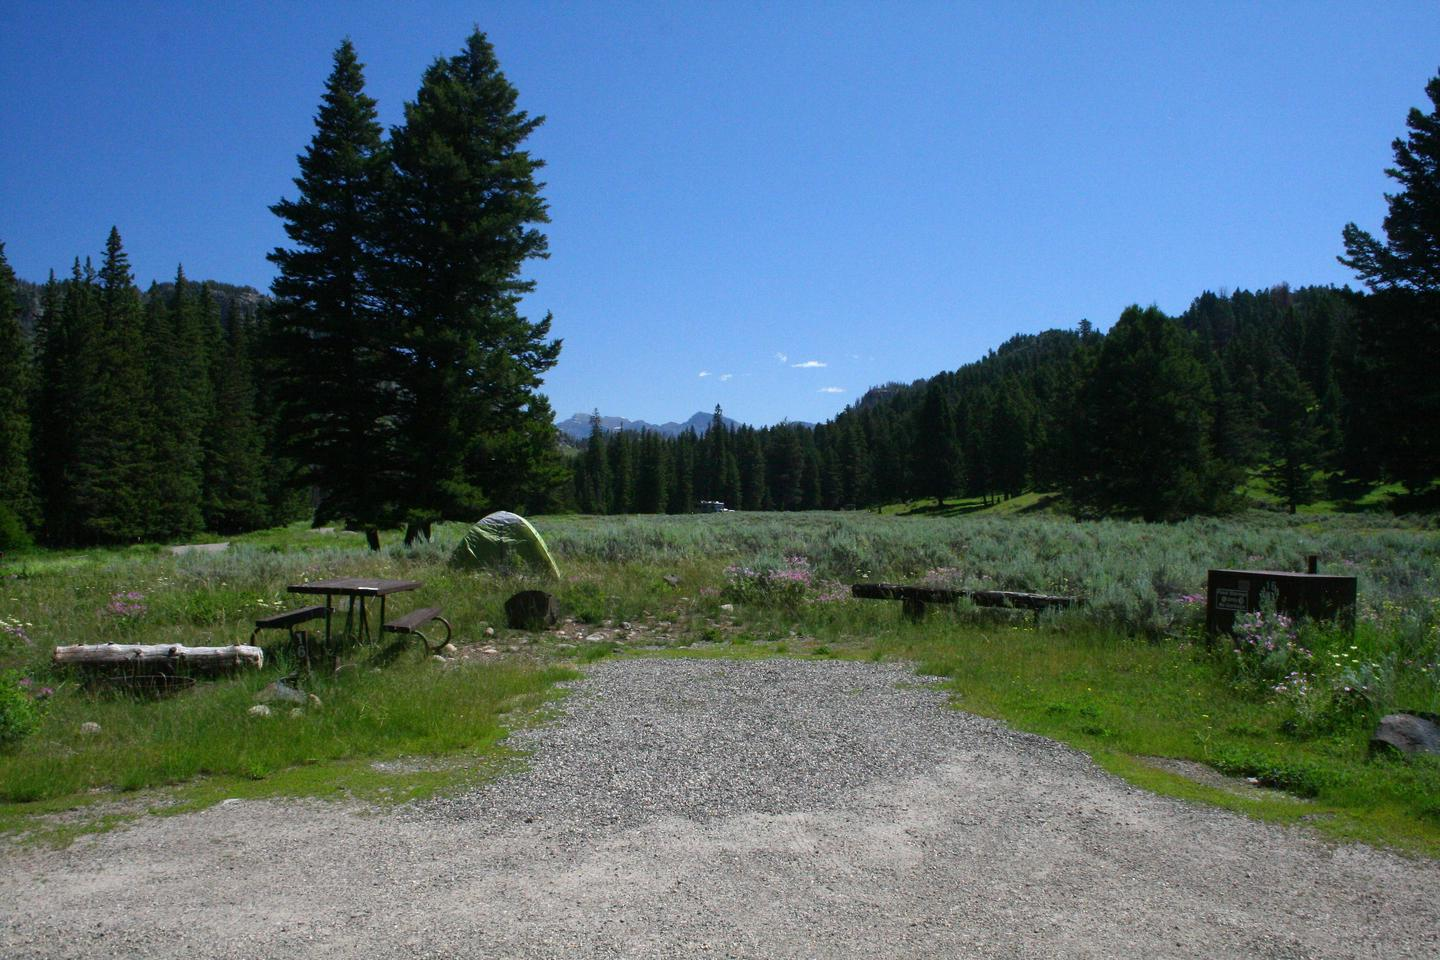 Slough Creek Campground Site #16